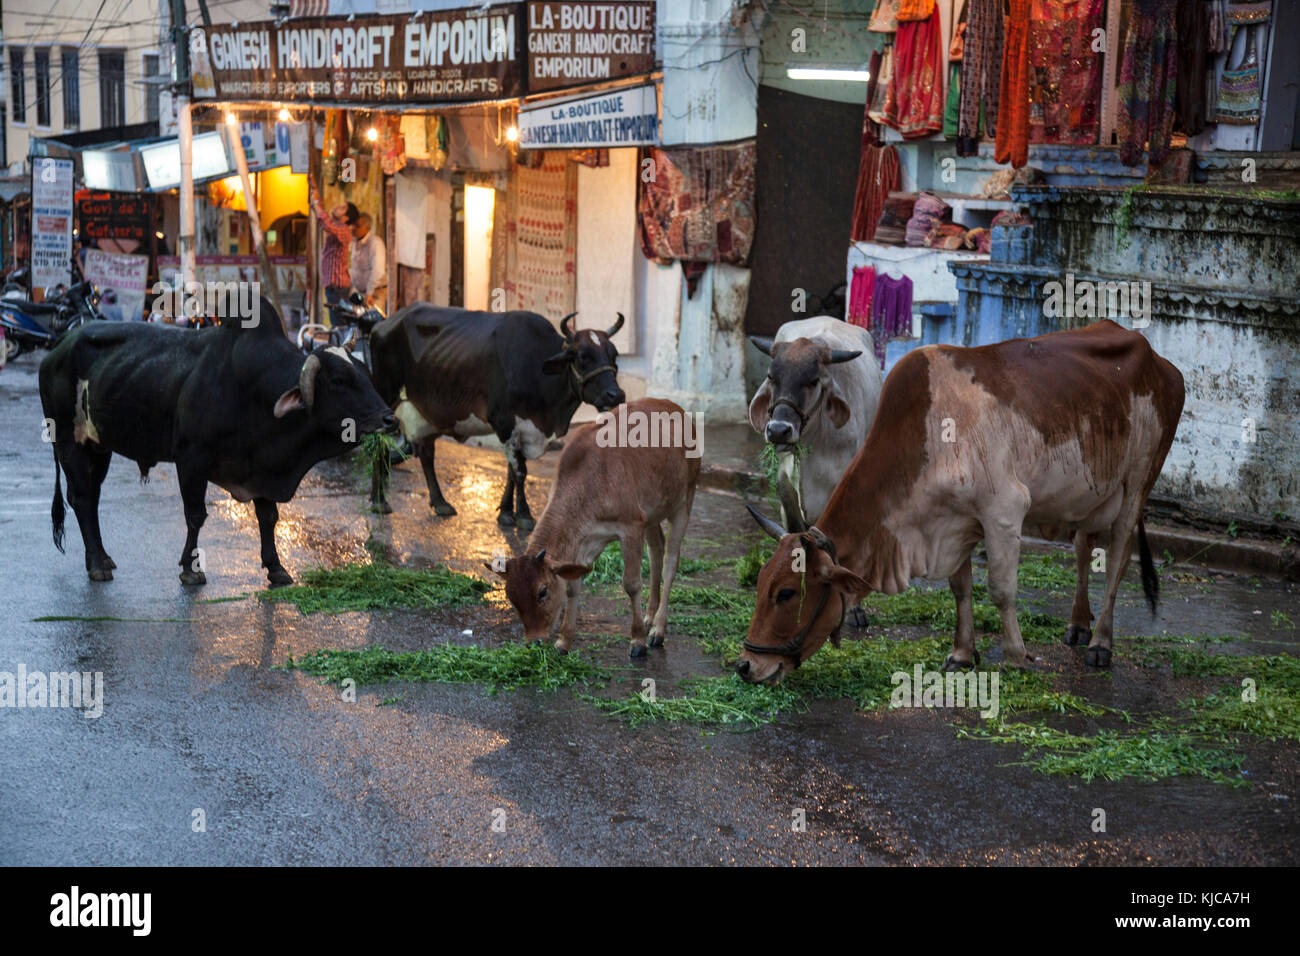 Cows eat on a street in Udaipur, India. - Stock Image